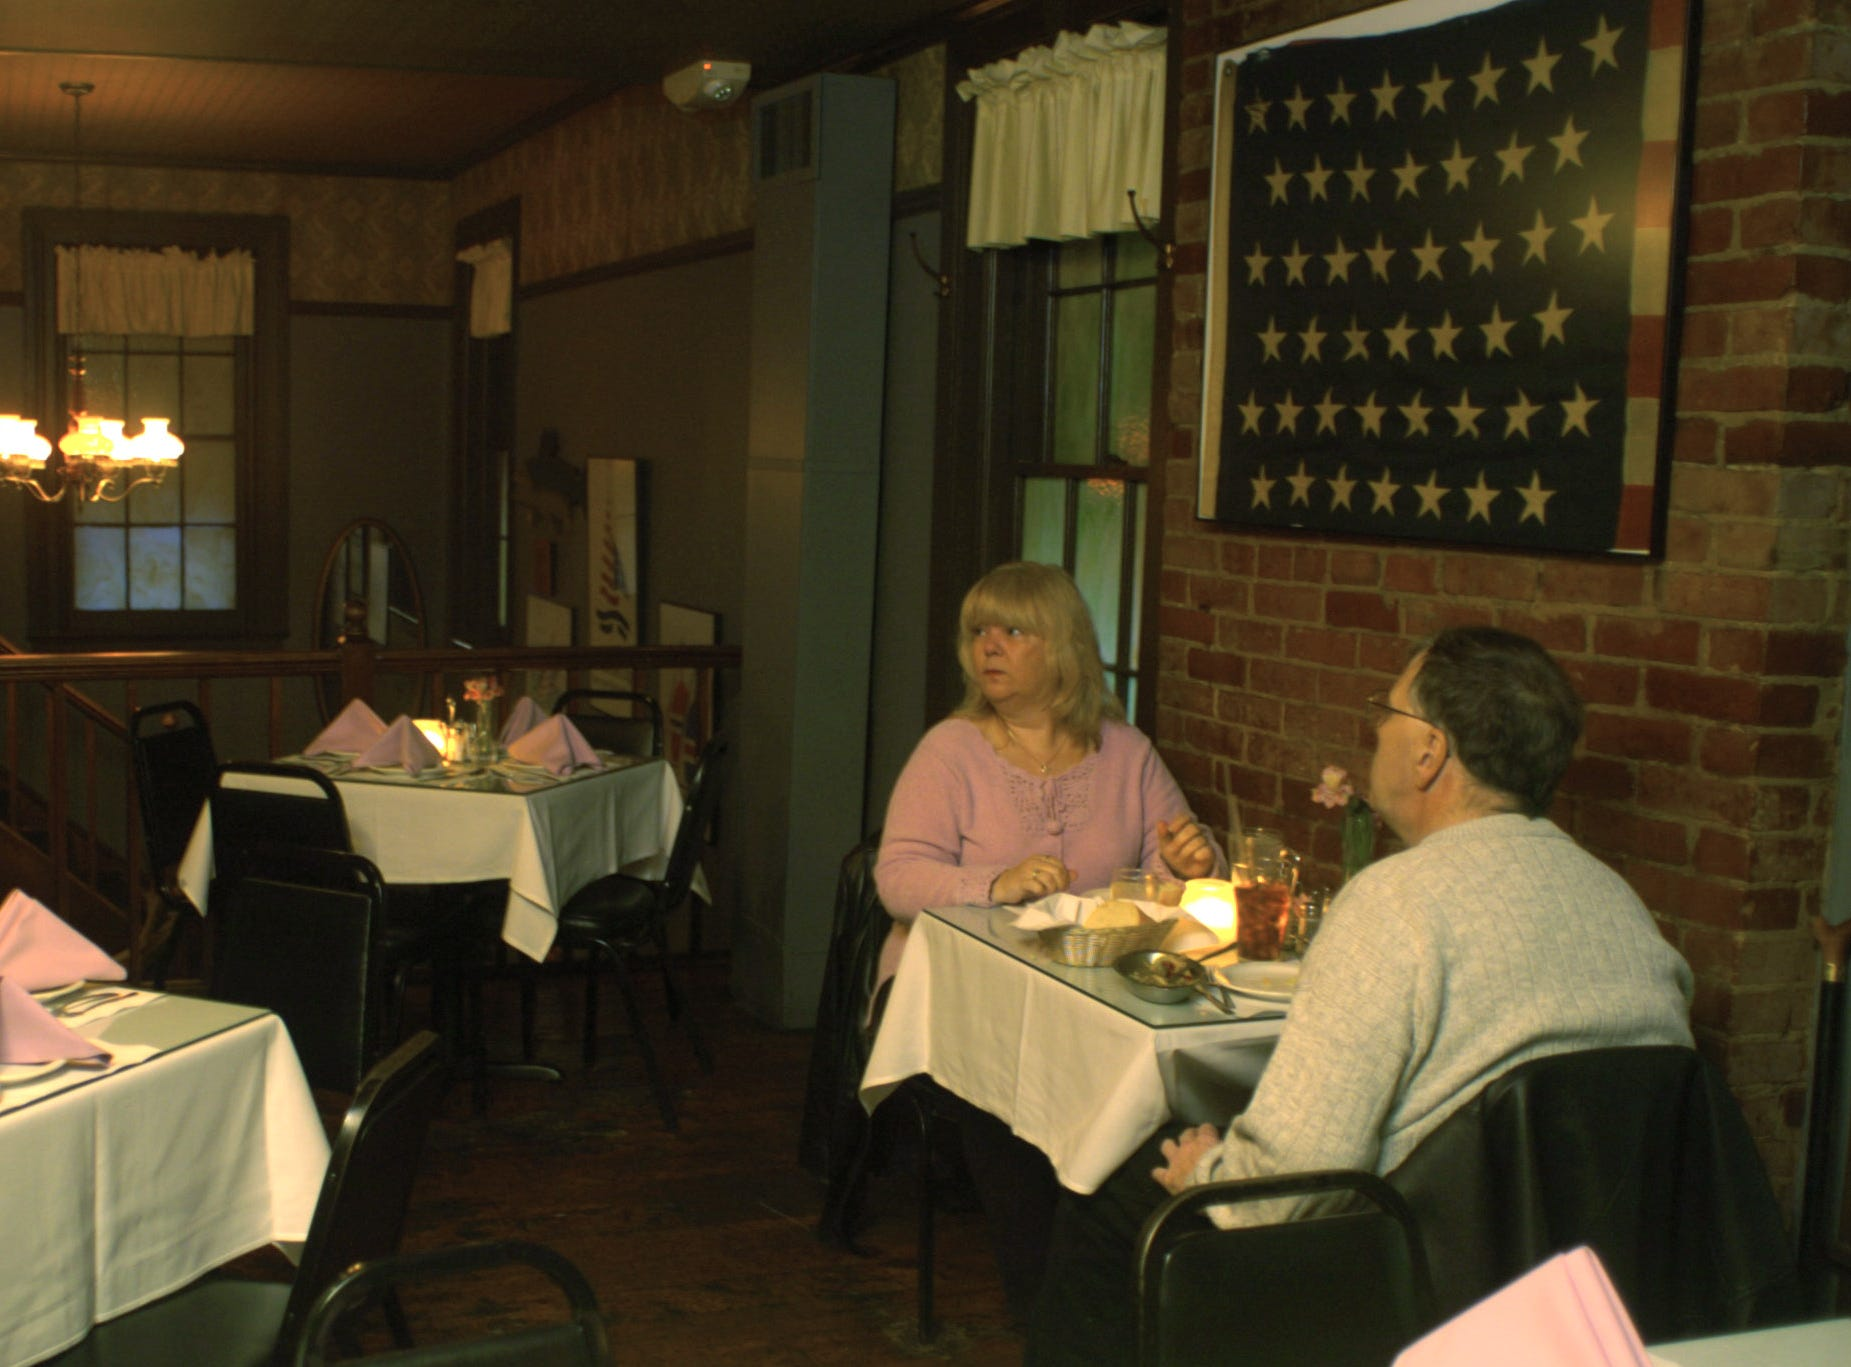 Barbara McColl and Robert Moss eat underneath the 1895 45-star flag at the Reunion Inn in Seabreeze in 2006.